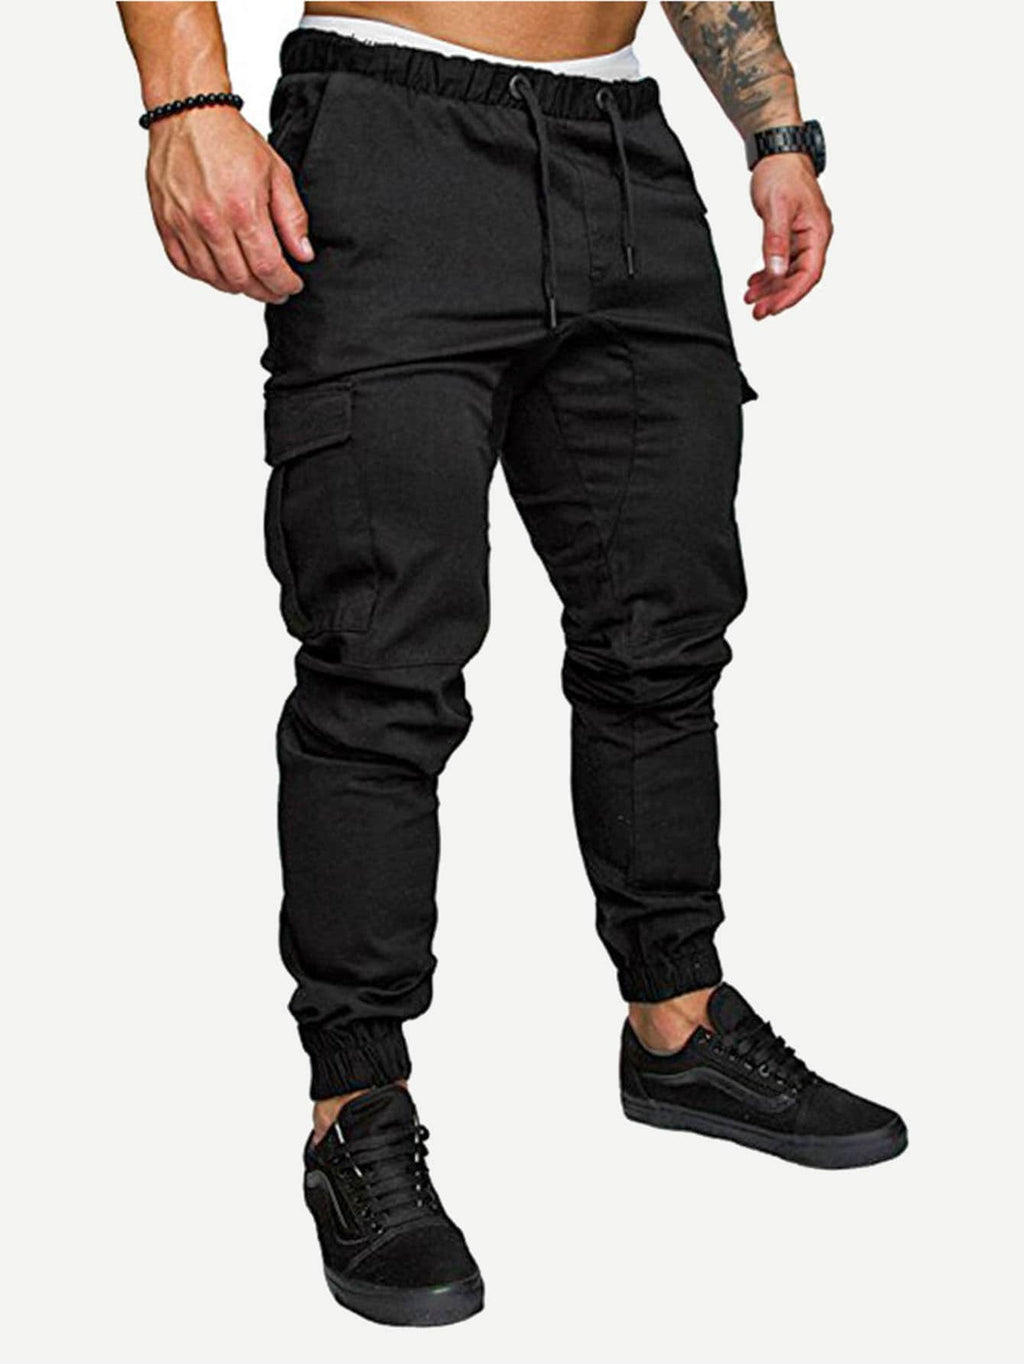 Sports Tights For Men - Pocket Decorated Drawstring Pants